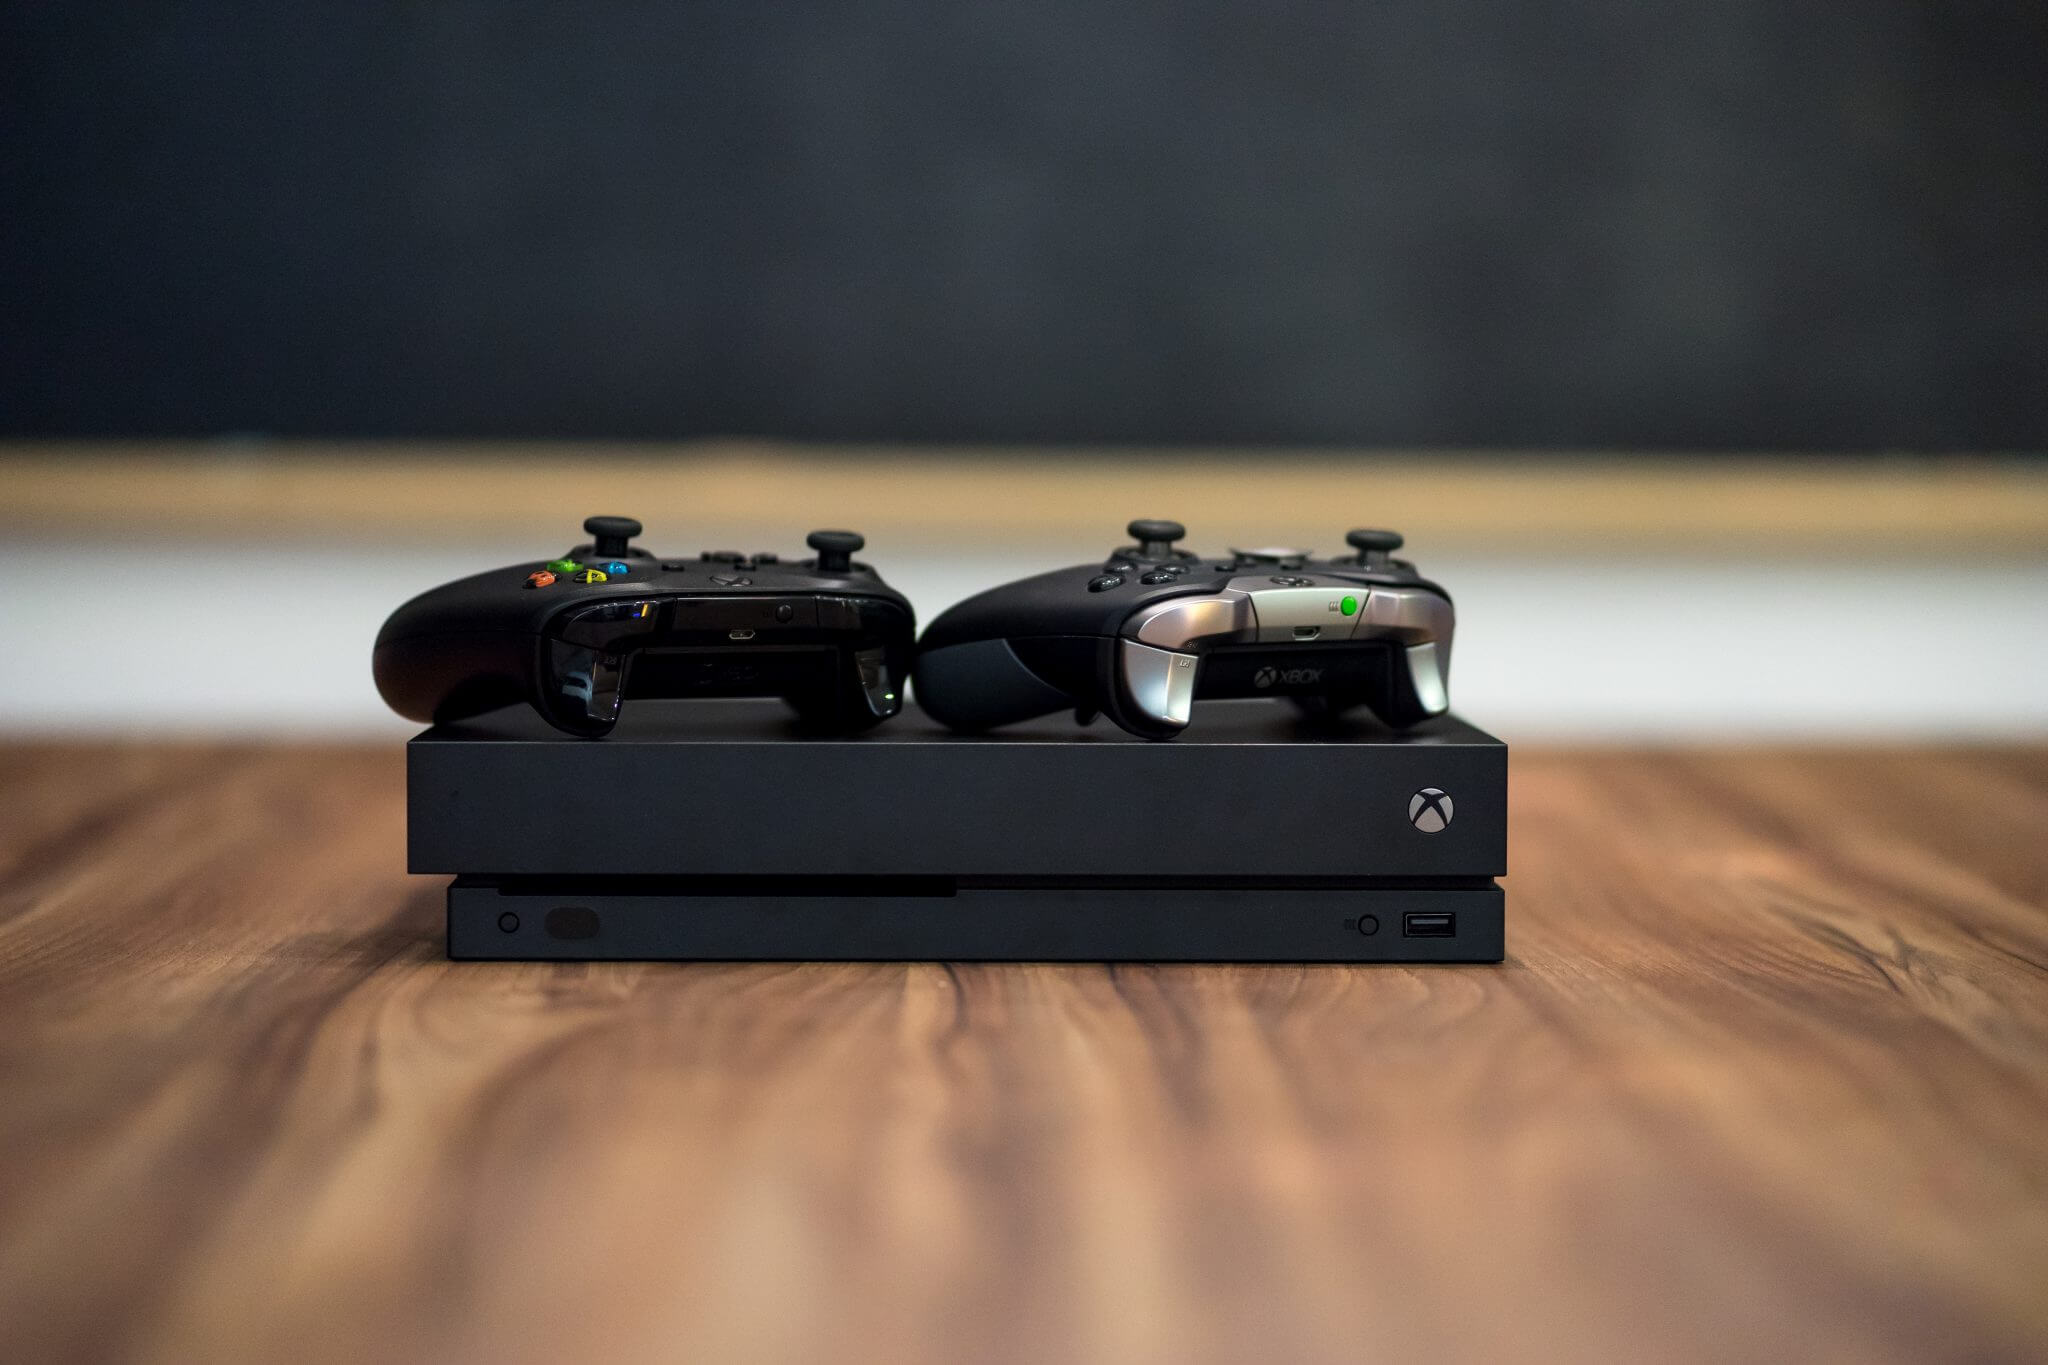 Xbox One X: Both controllers